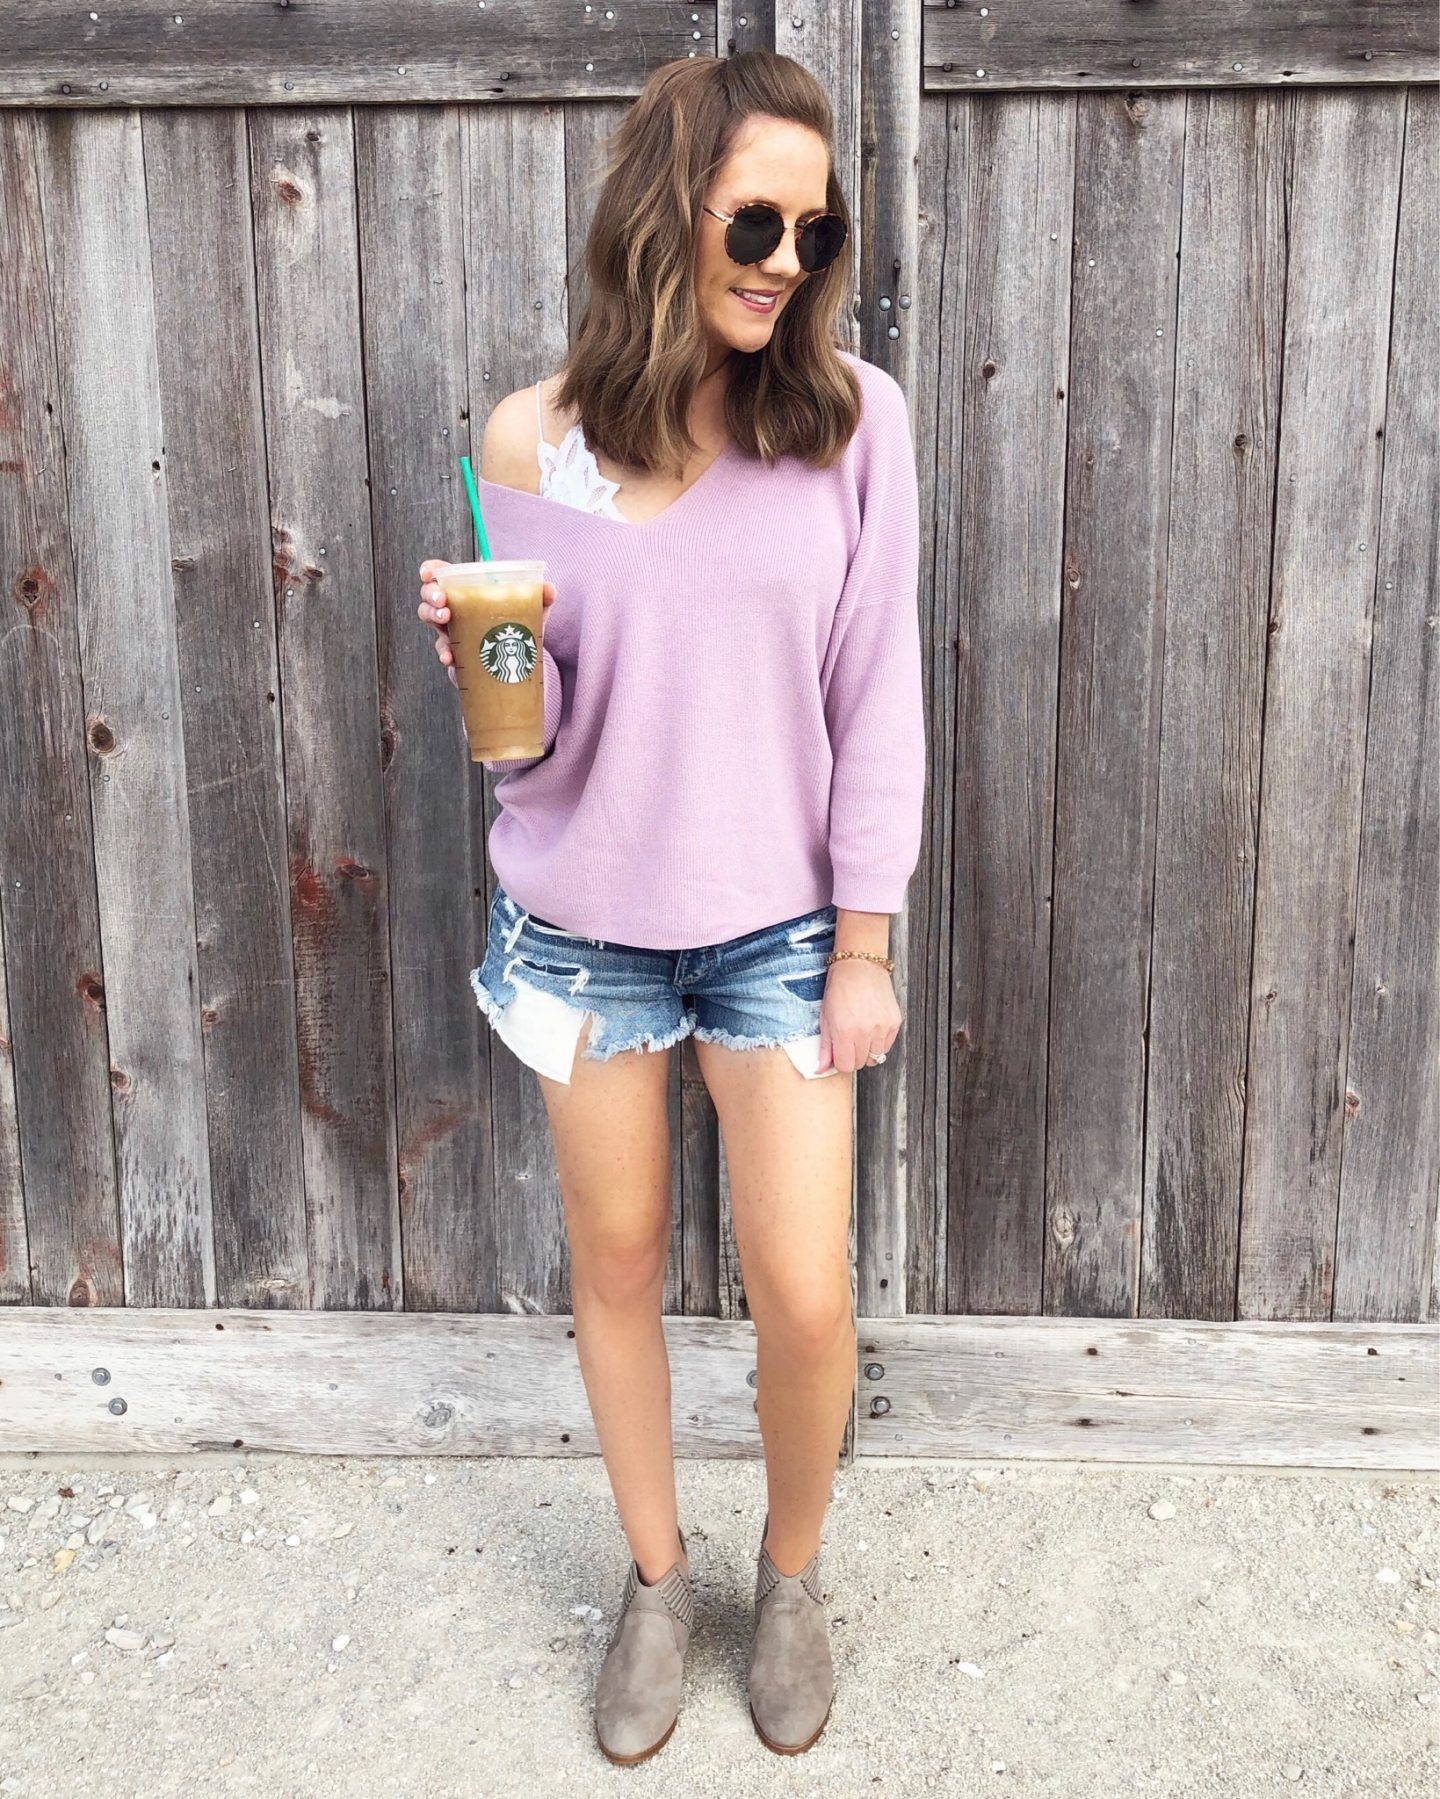 Real Life Outfits, what to wear in the fall, fall fashion 2018, how to transition summer clothing to fall, fall fashion trends for 2018, mom style, lavender off the shoulder sweater, free people bralette